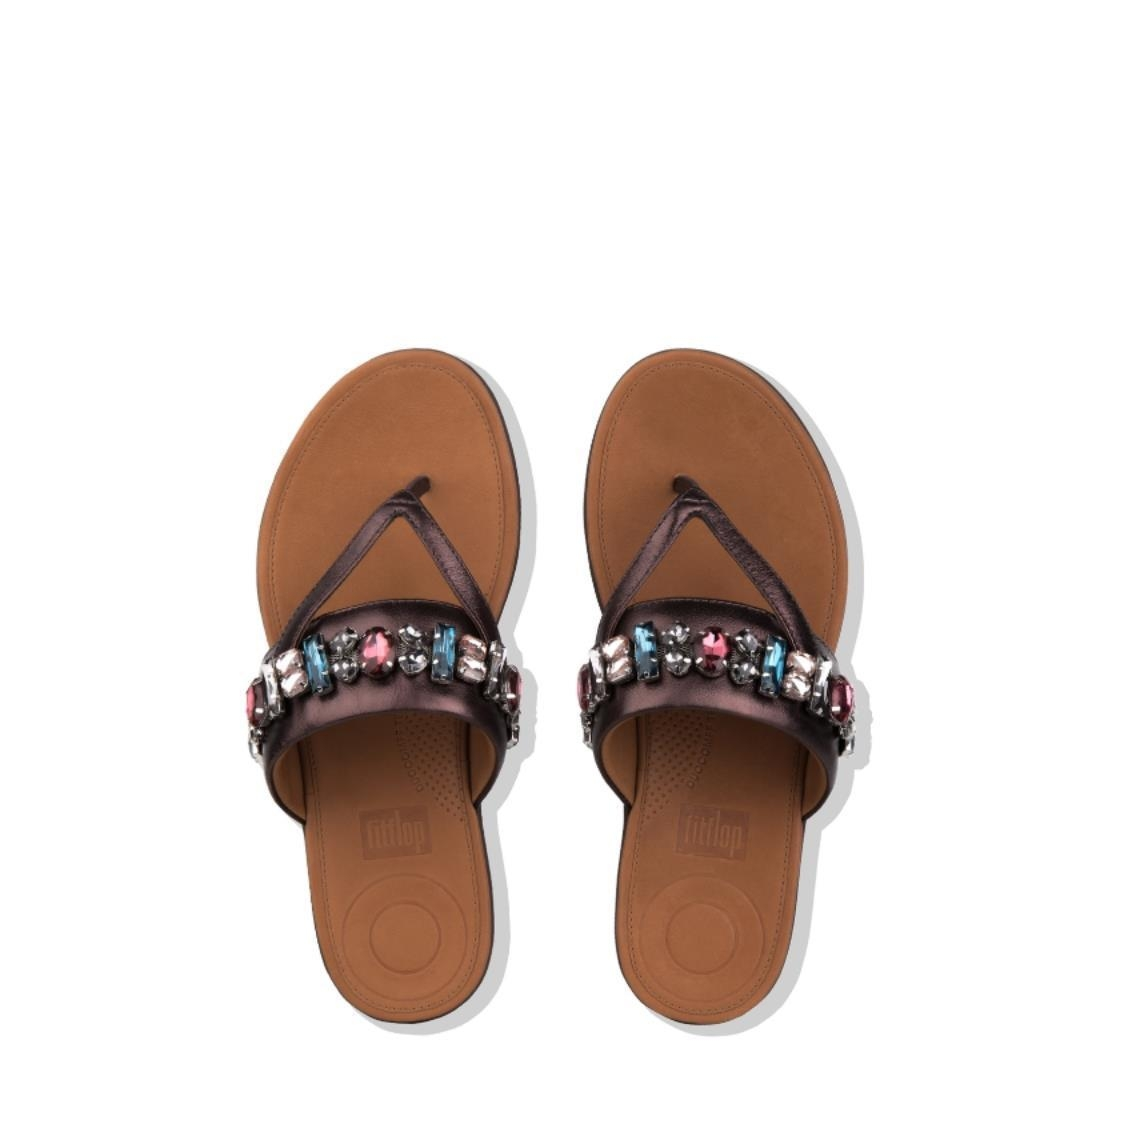 Delta Bejewelled Leather Toe-Thongs Berry